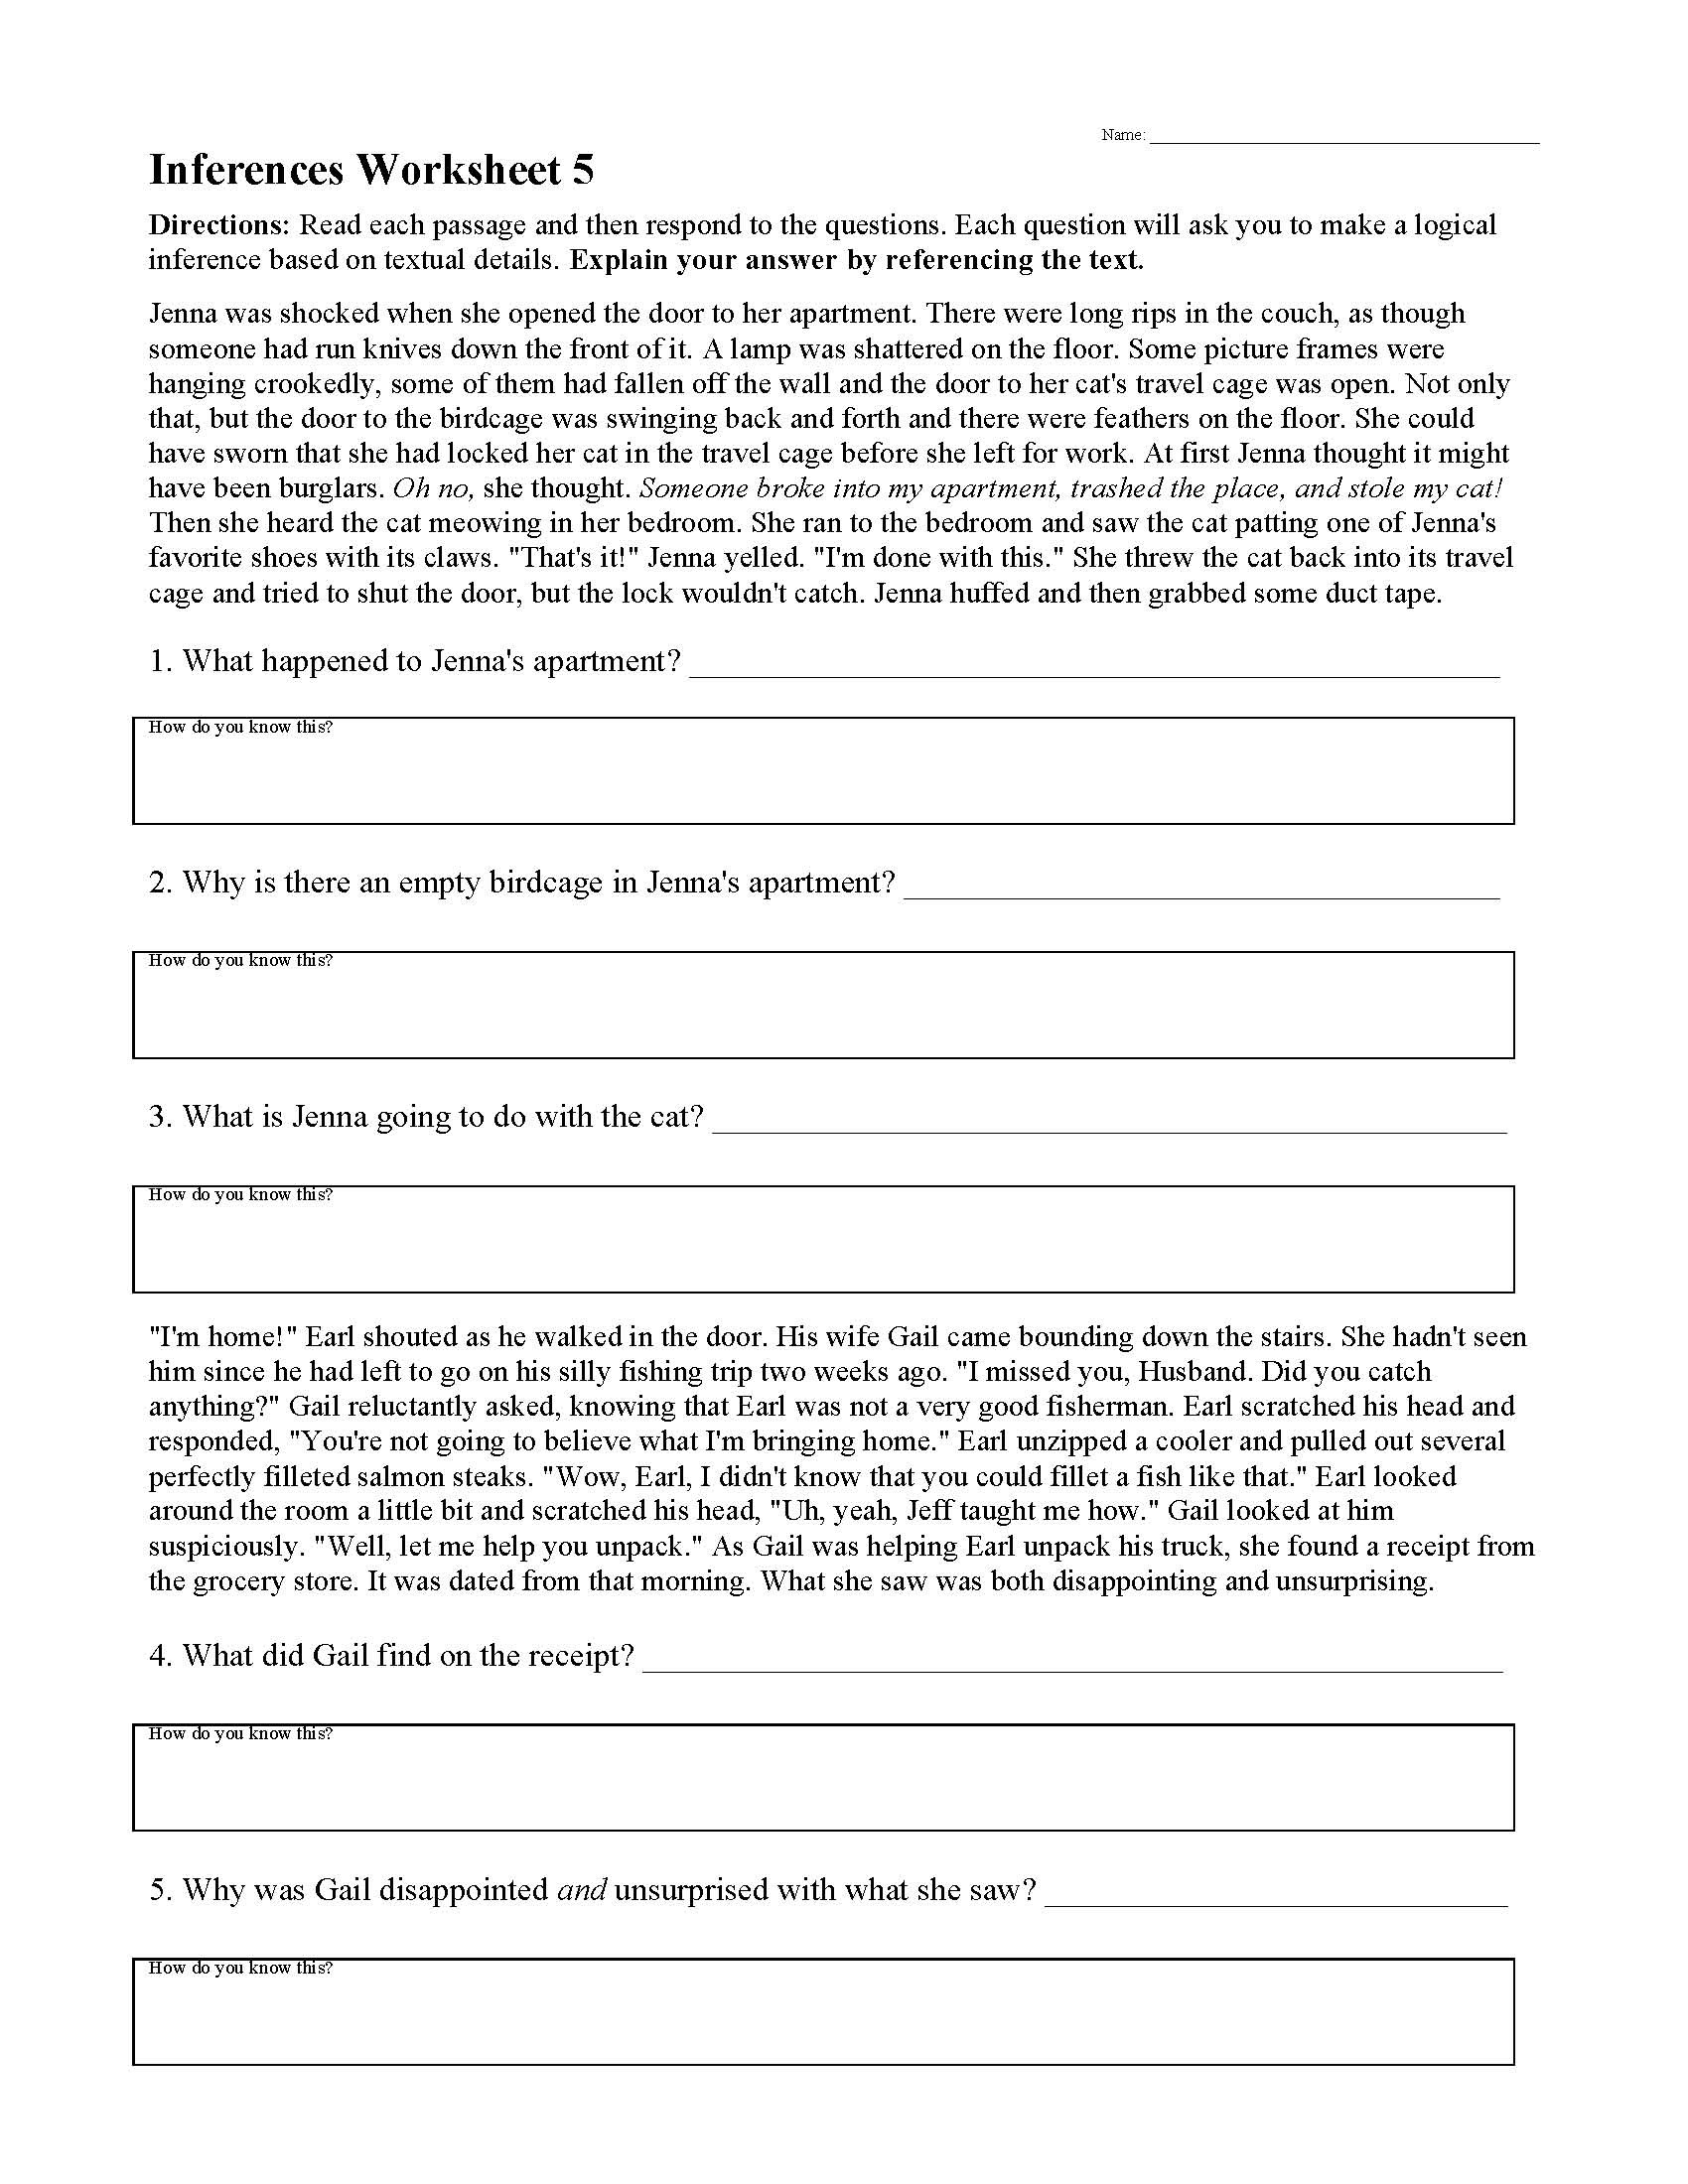 Theme Worksheets for Middle School Inferences Worksheets